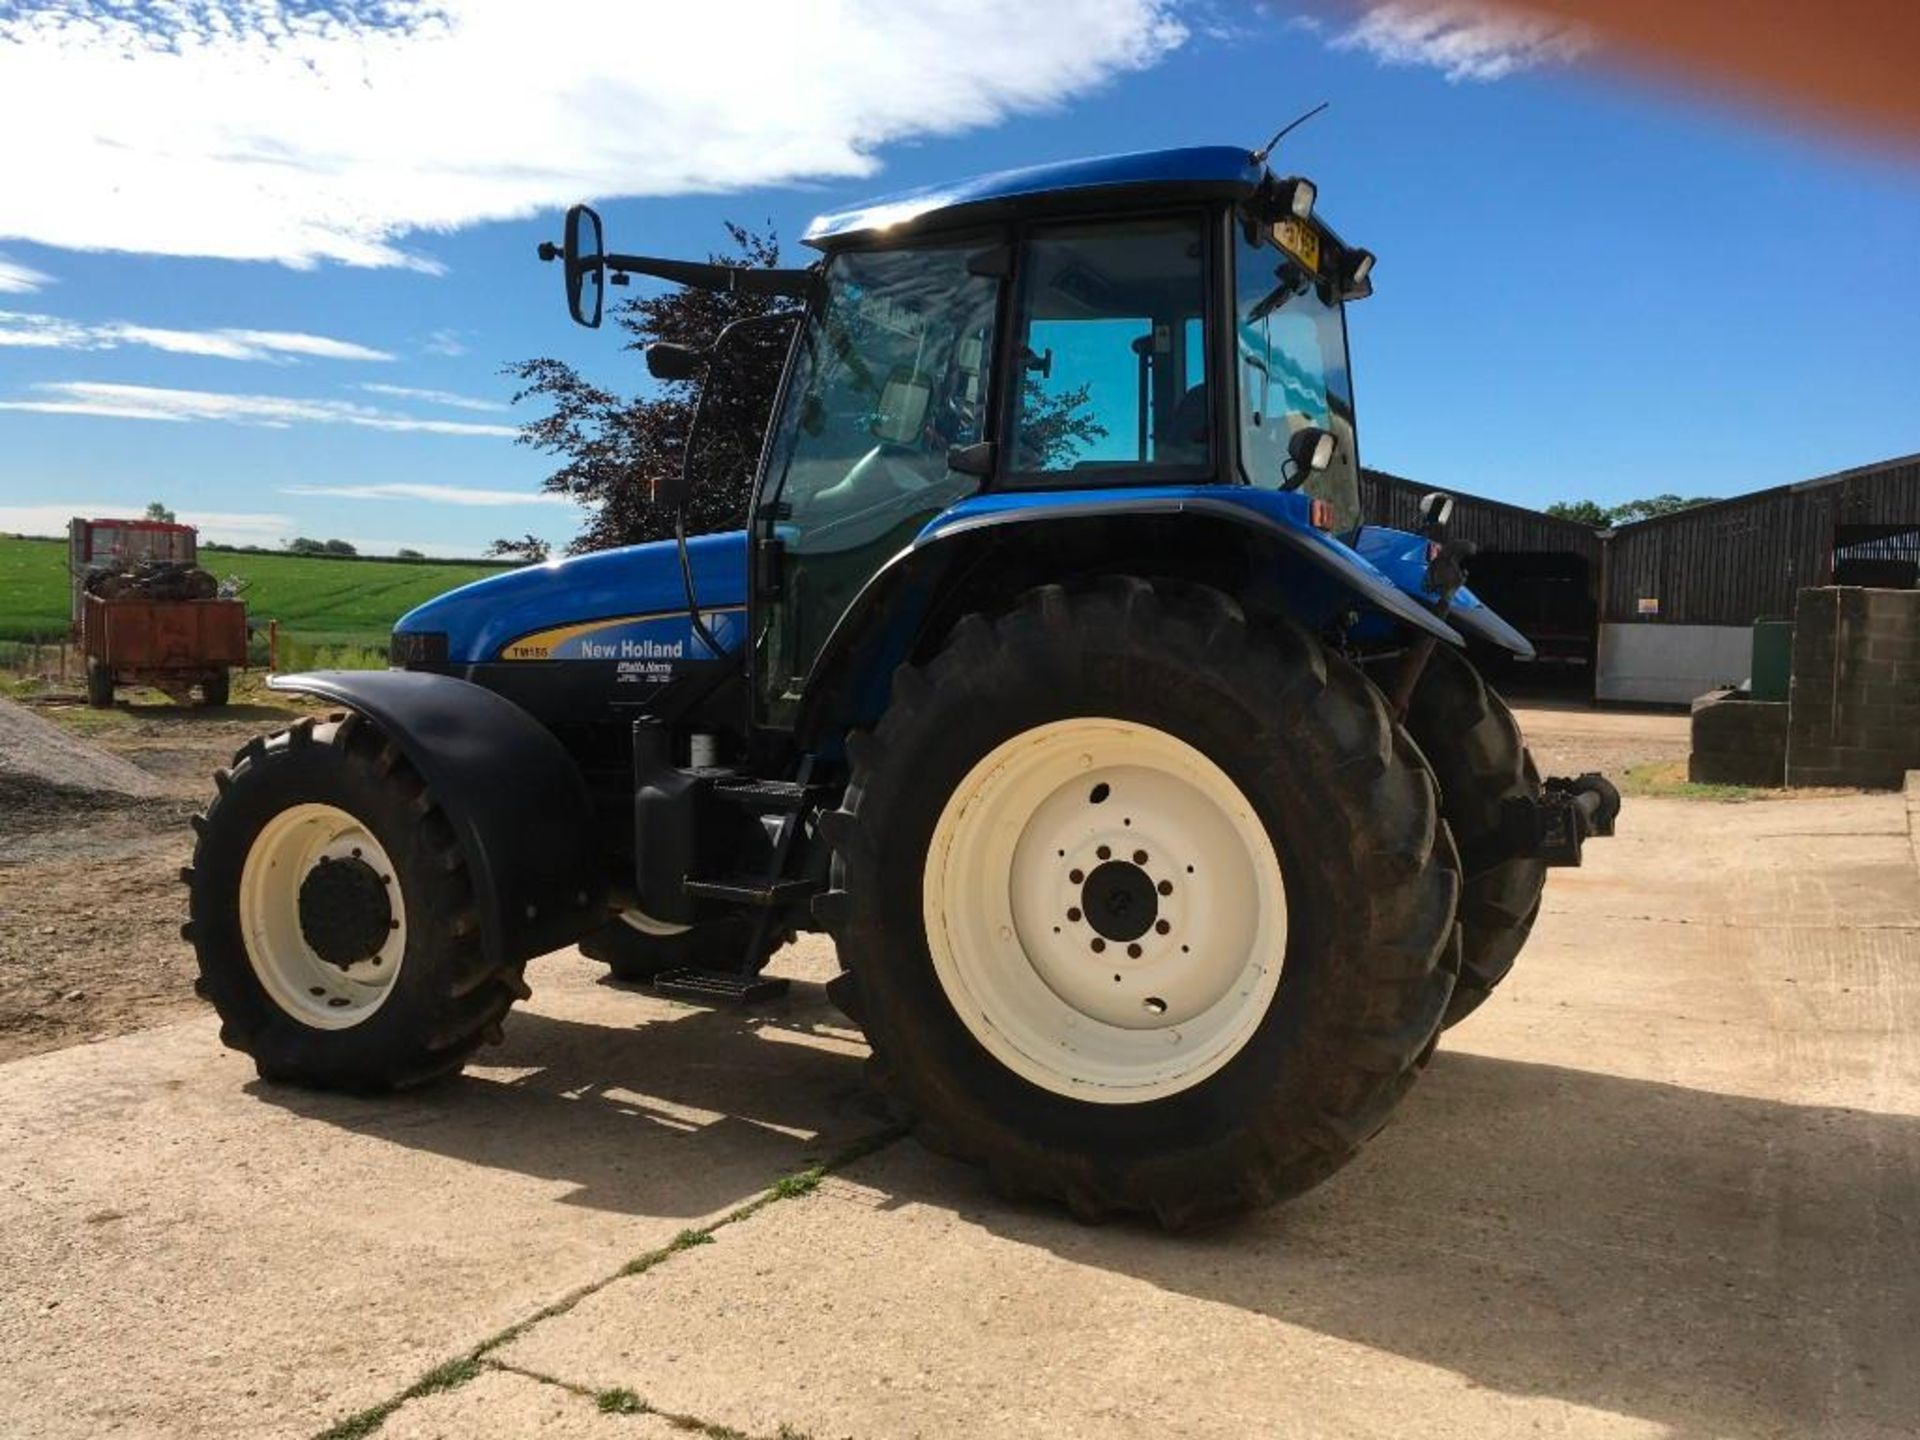 2007 New Holland TM155 tractor with range command gear box, 4 spool valves, push out pick up hitch, - Image 7 of 12